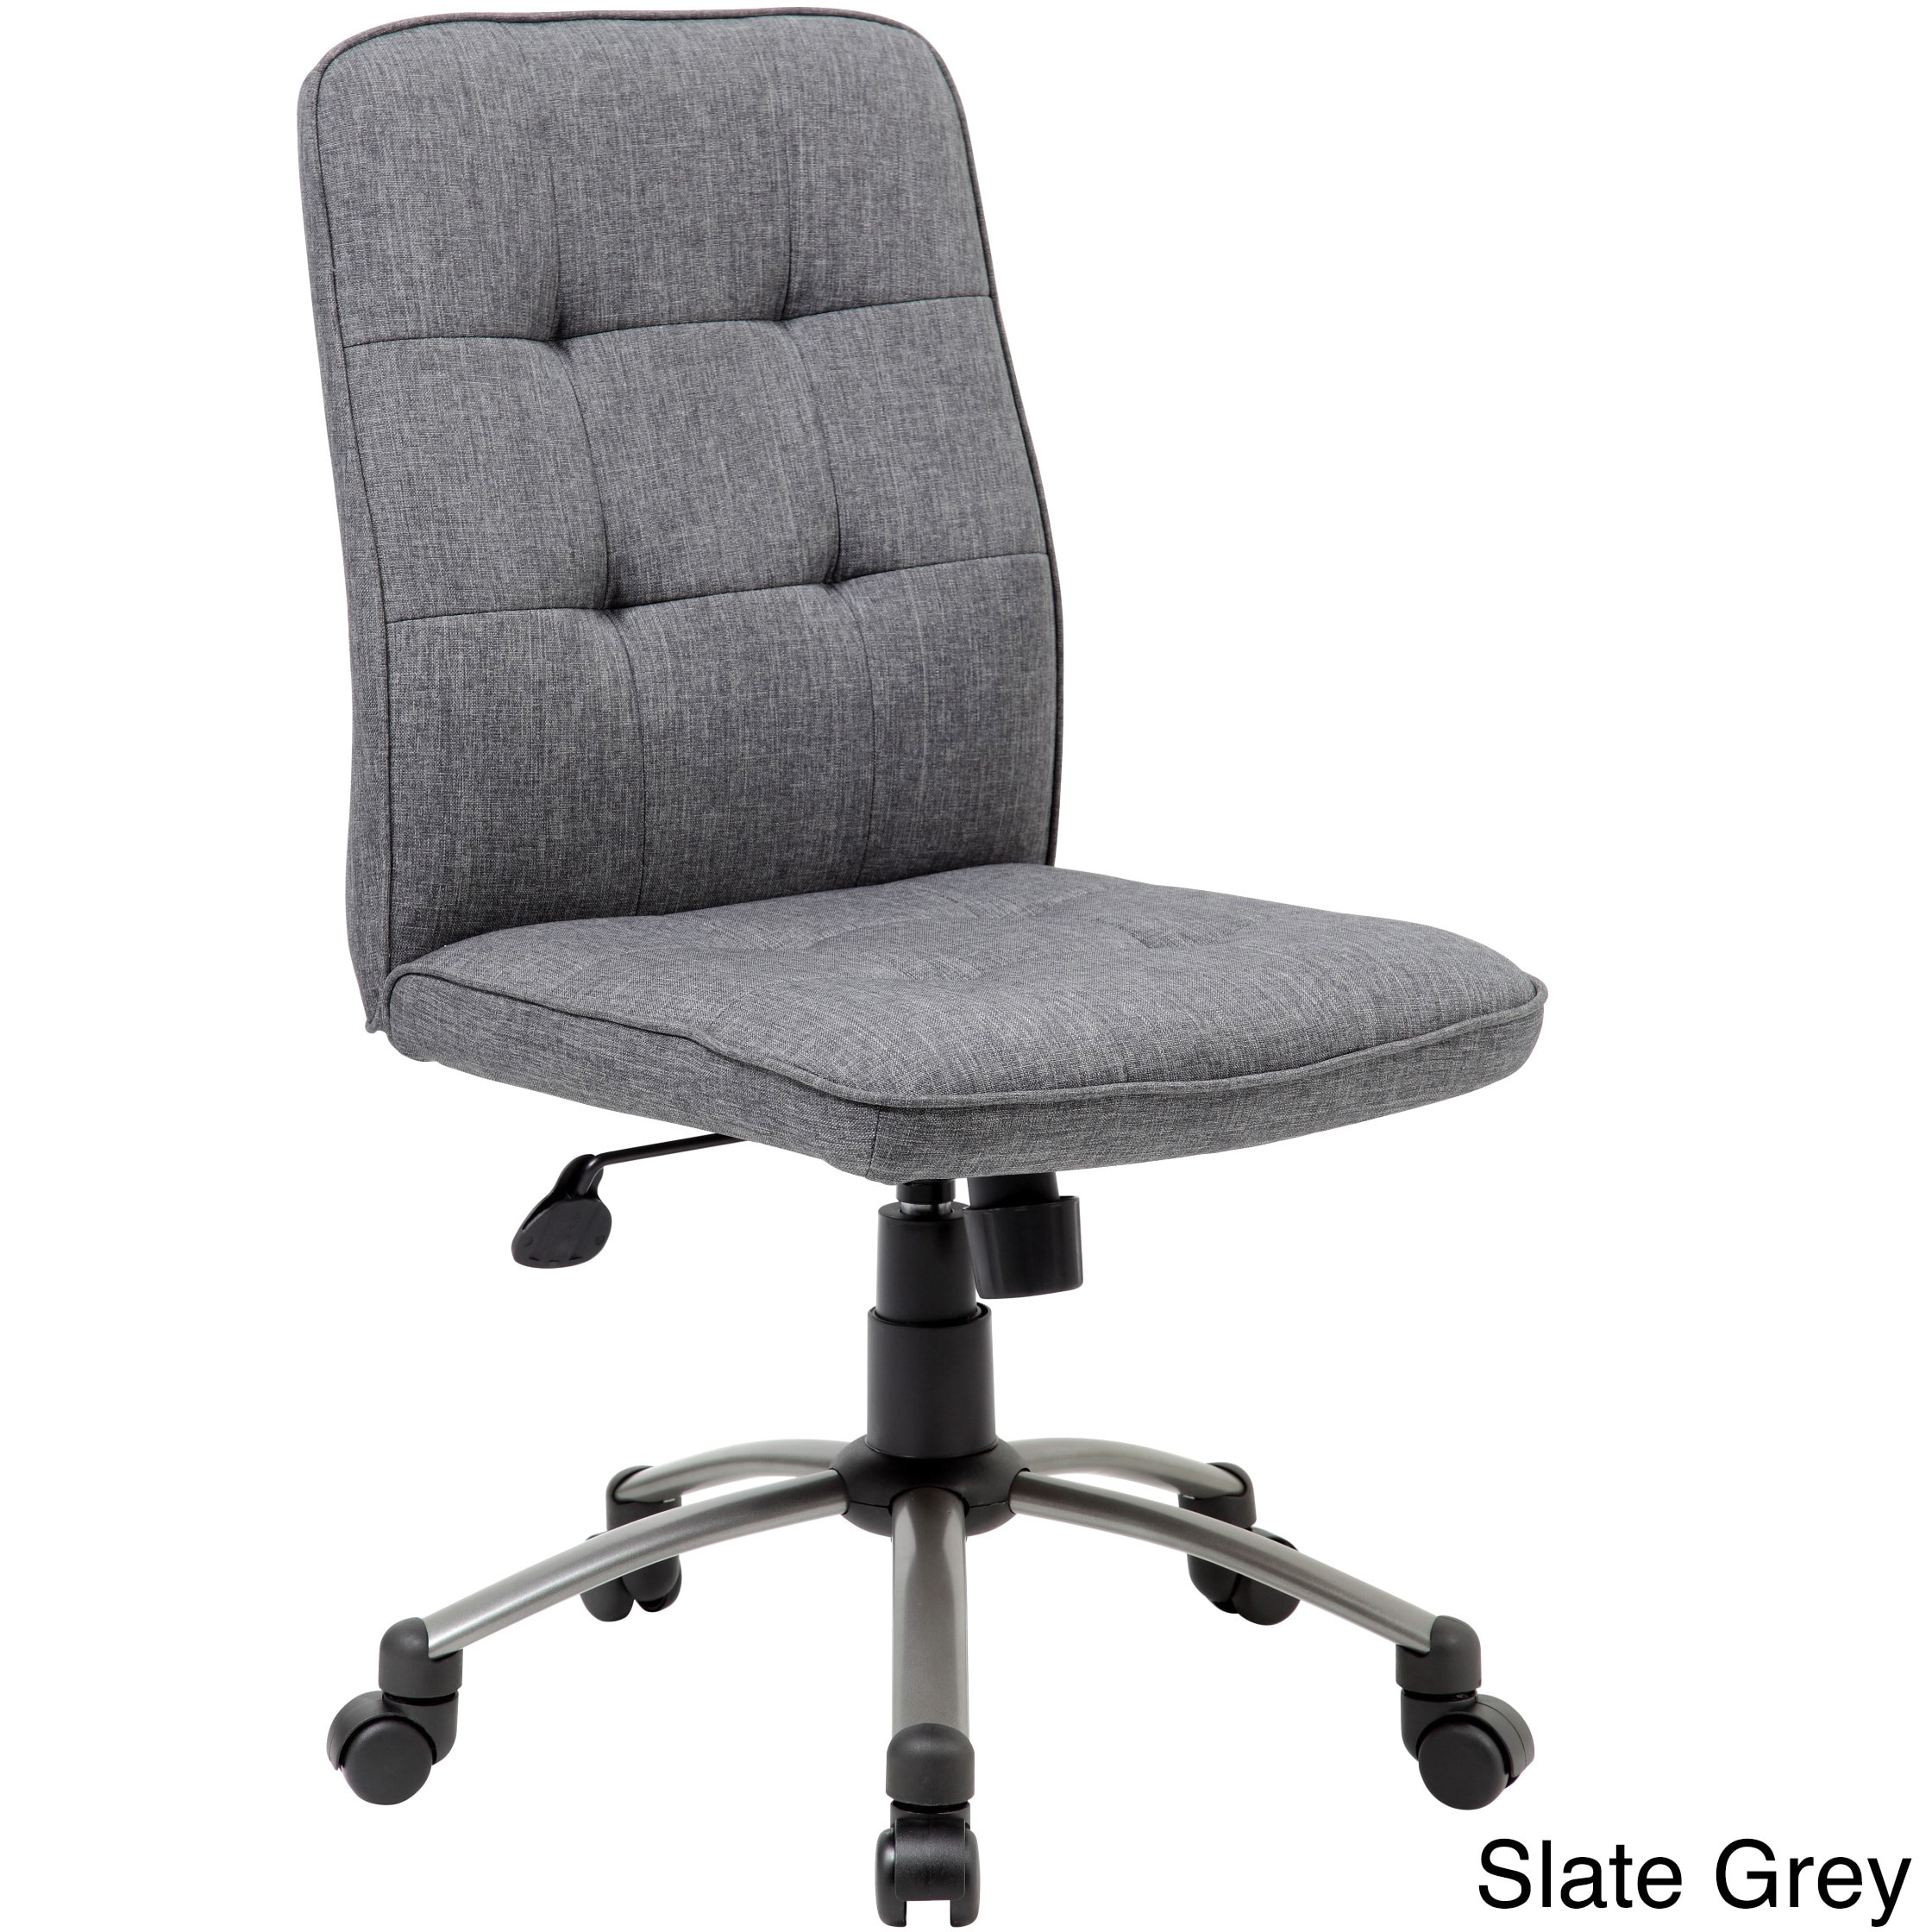 office chair fabric chairs for desks with wheels shop boss modern ergonomic free shipping today overstock com 11693392